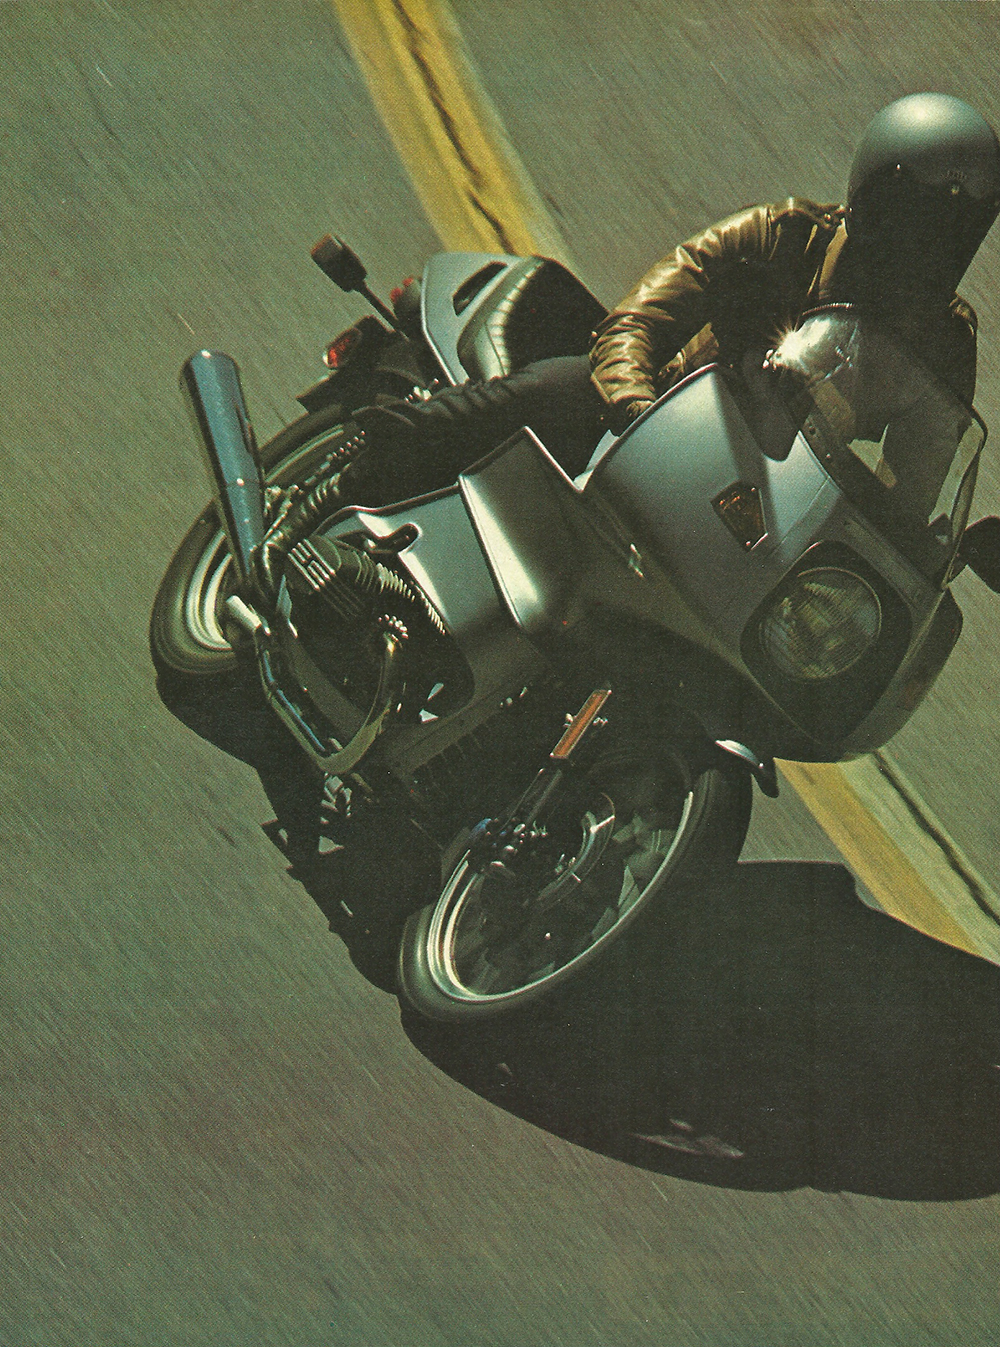 1976 BMW R100RS road test 01.jpg